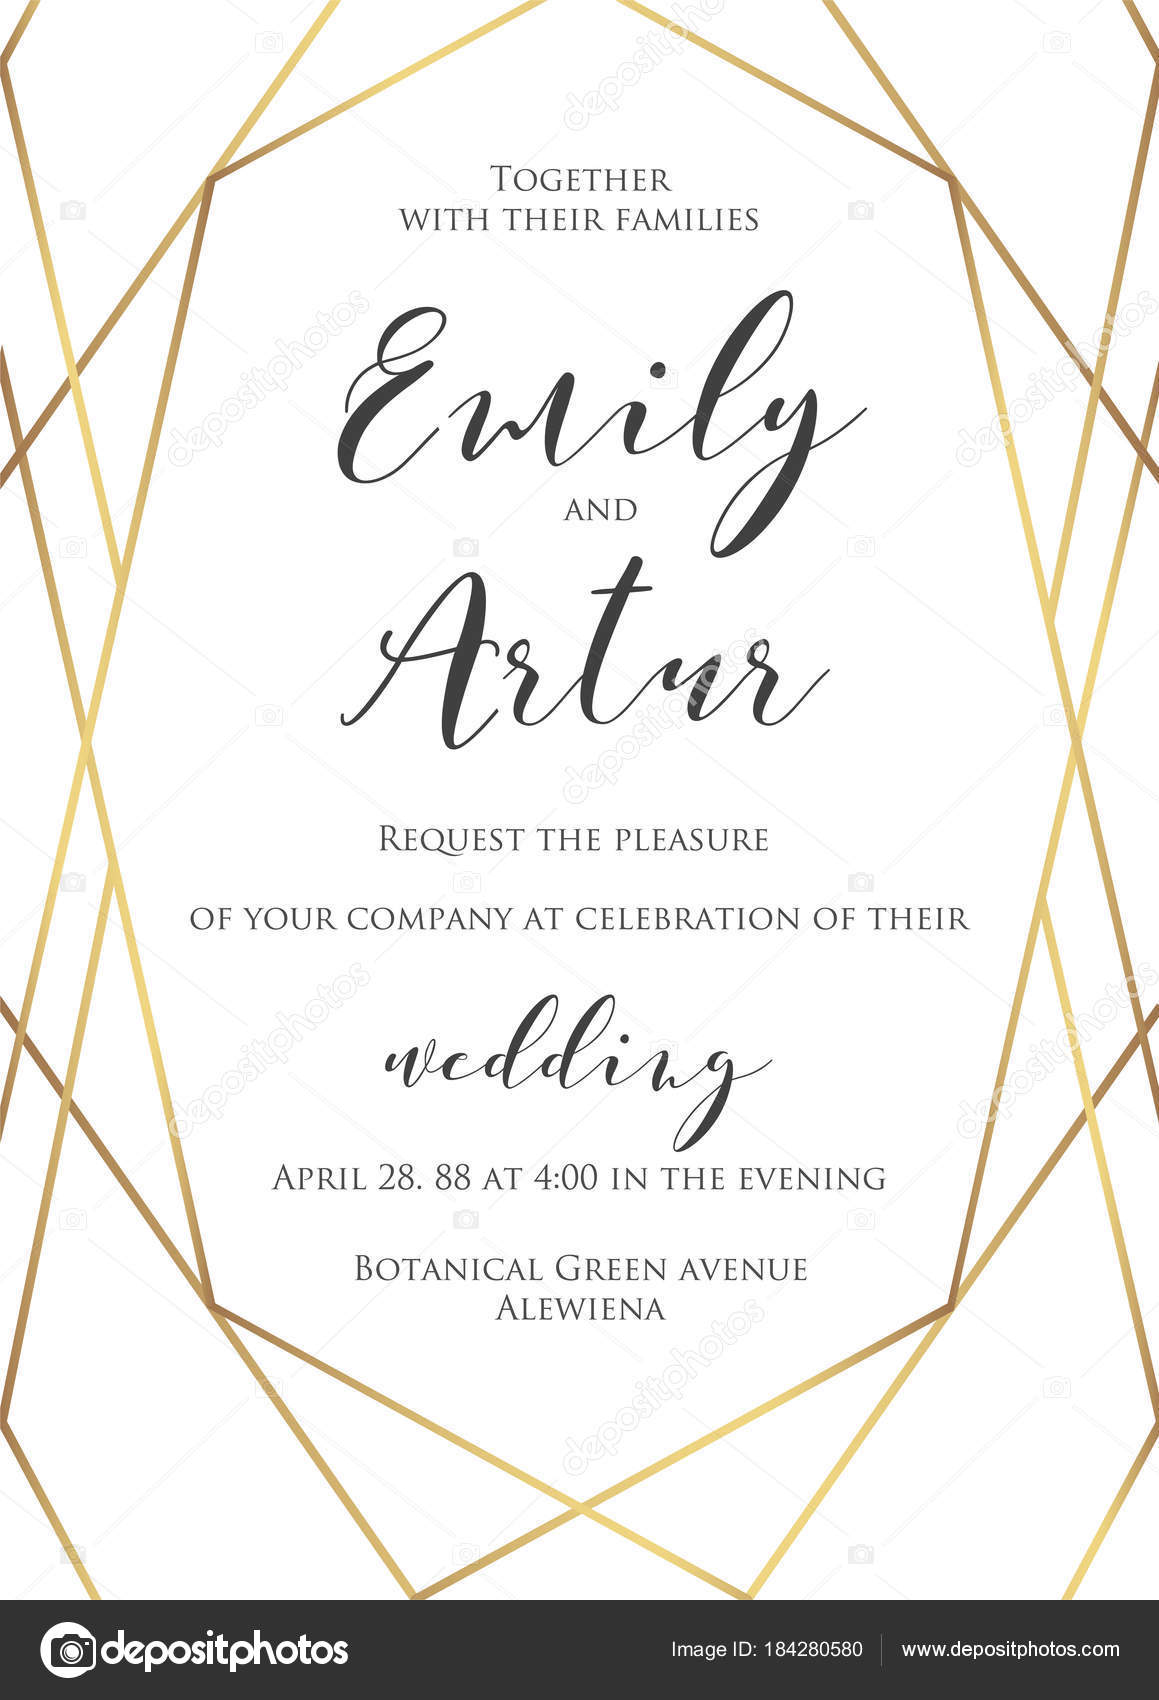 Wedding invite invitation save the date card delicate design with wedding invite invitation save the date card delicate design with elegant vector golden foil geometrical stopboris Image collections